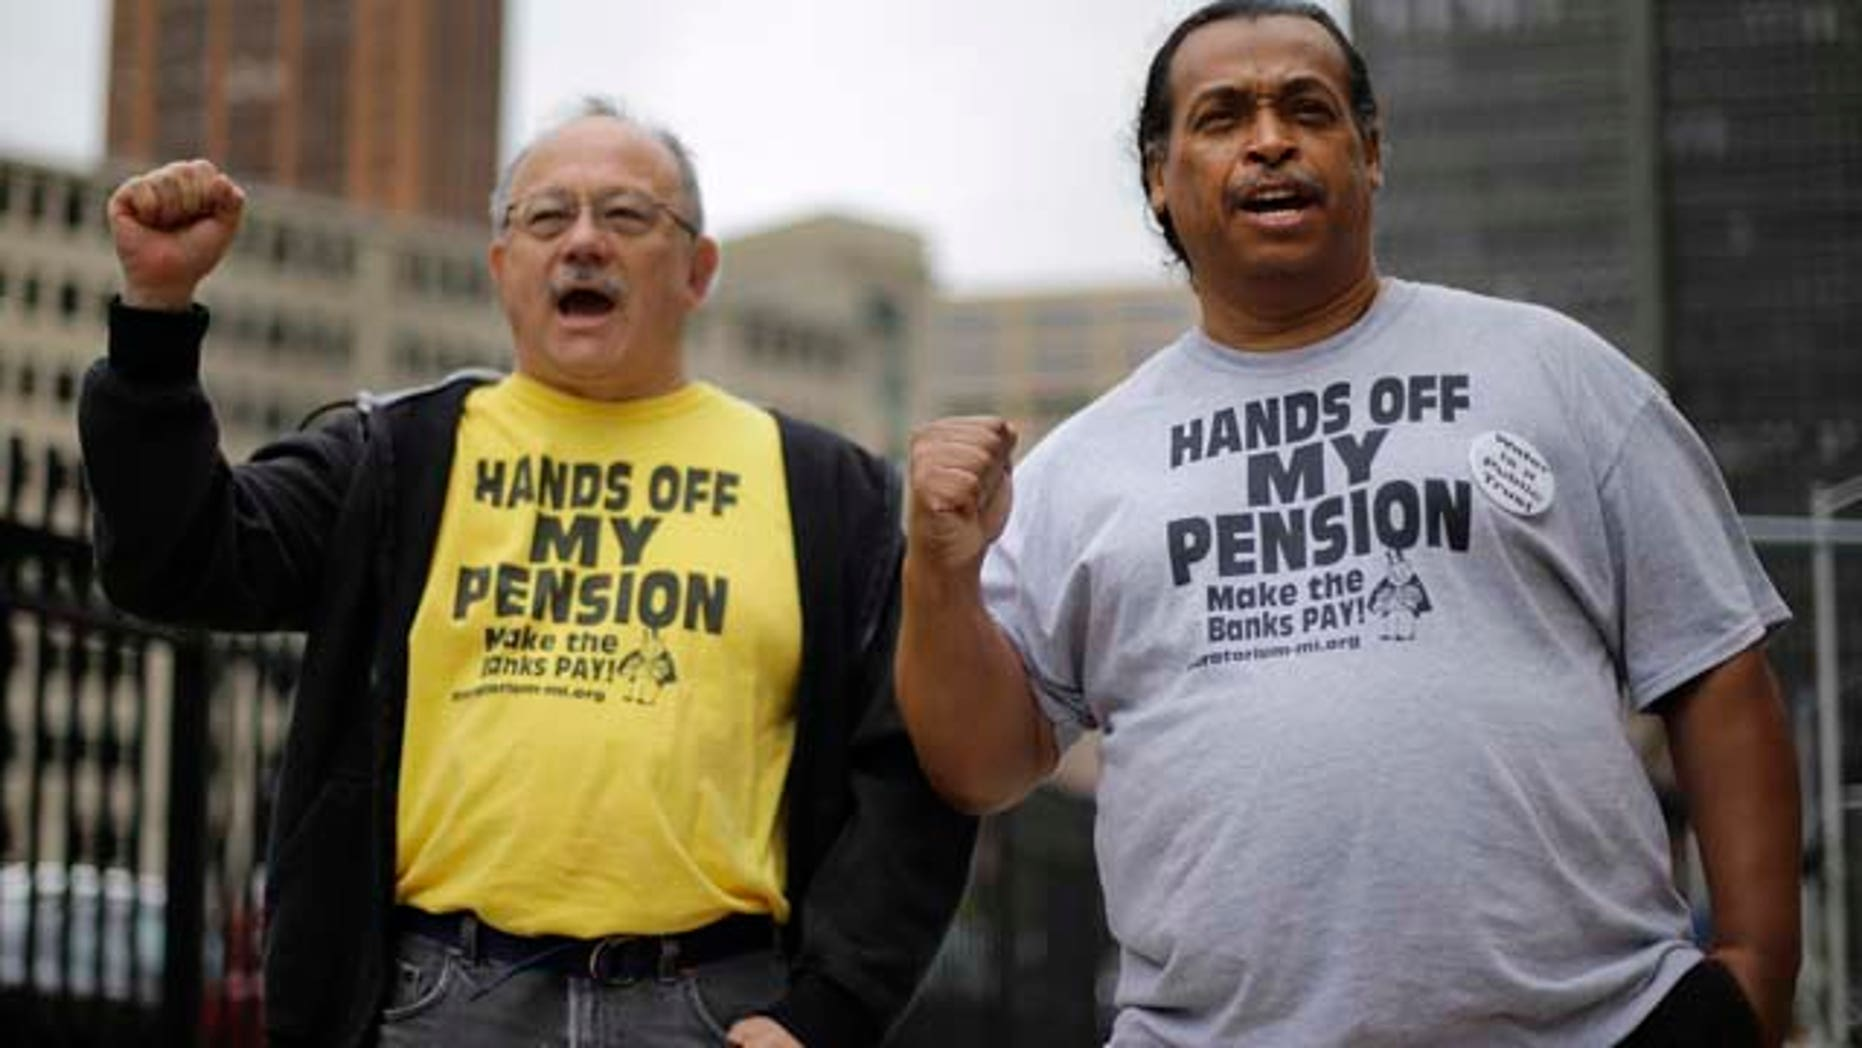 FILE - In a Thursday, July 3, 2014 file photo, Detroit retirees Mike Shane, left, and William Davis protest near the federal courthouse in Detroit. (AP Photo/Paul Sancya, File)